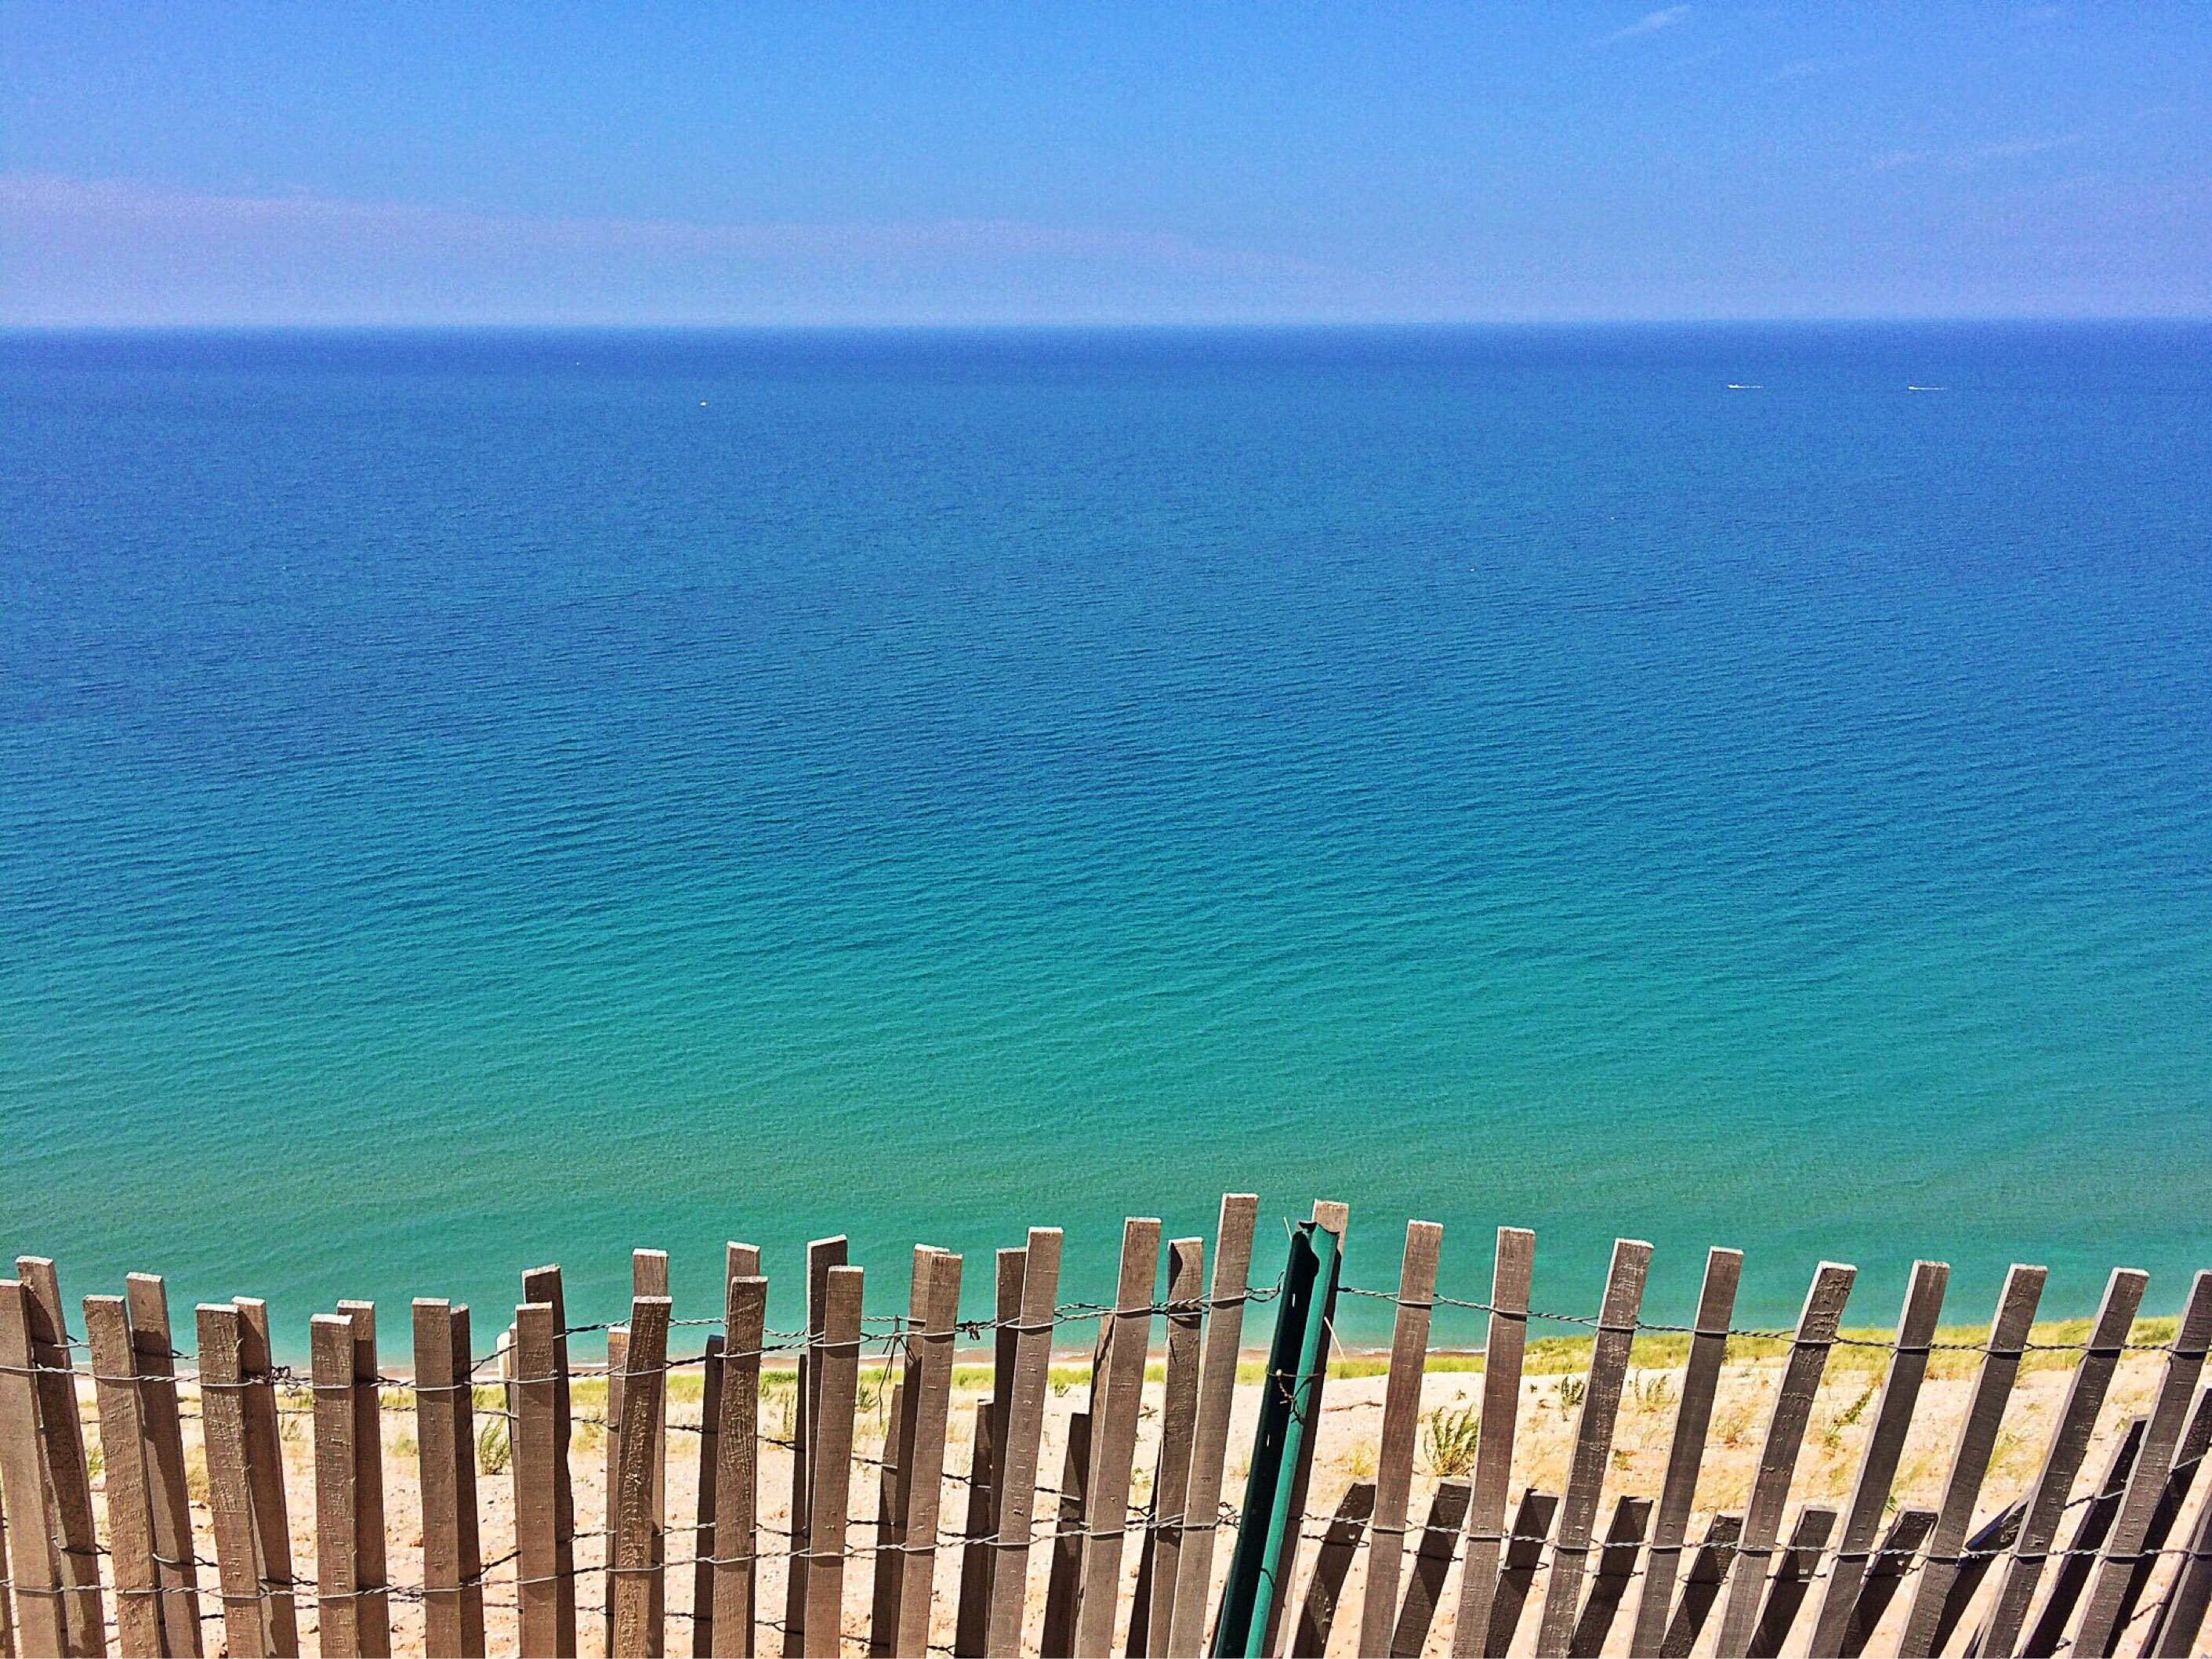 Landscape And Seascape Of The Great Lakes And Beach In